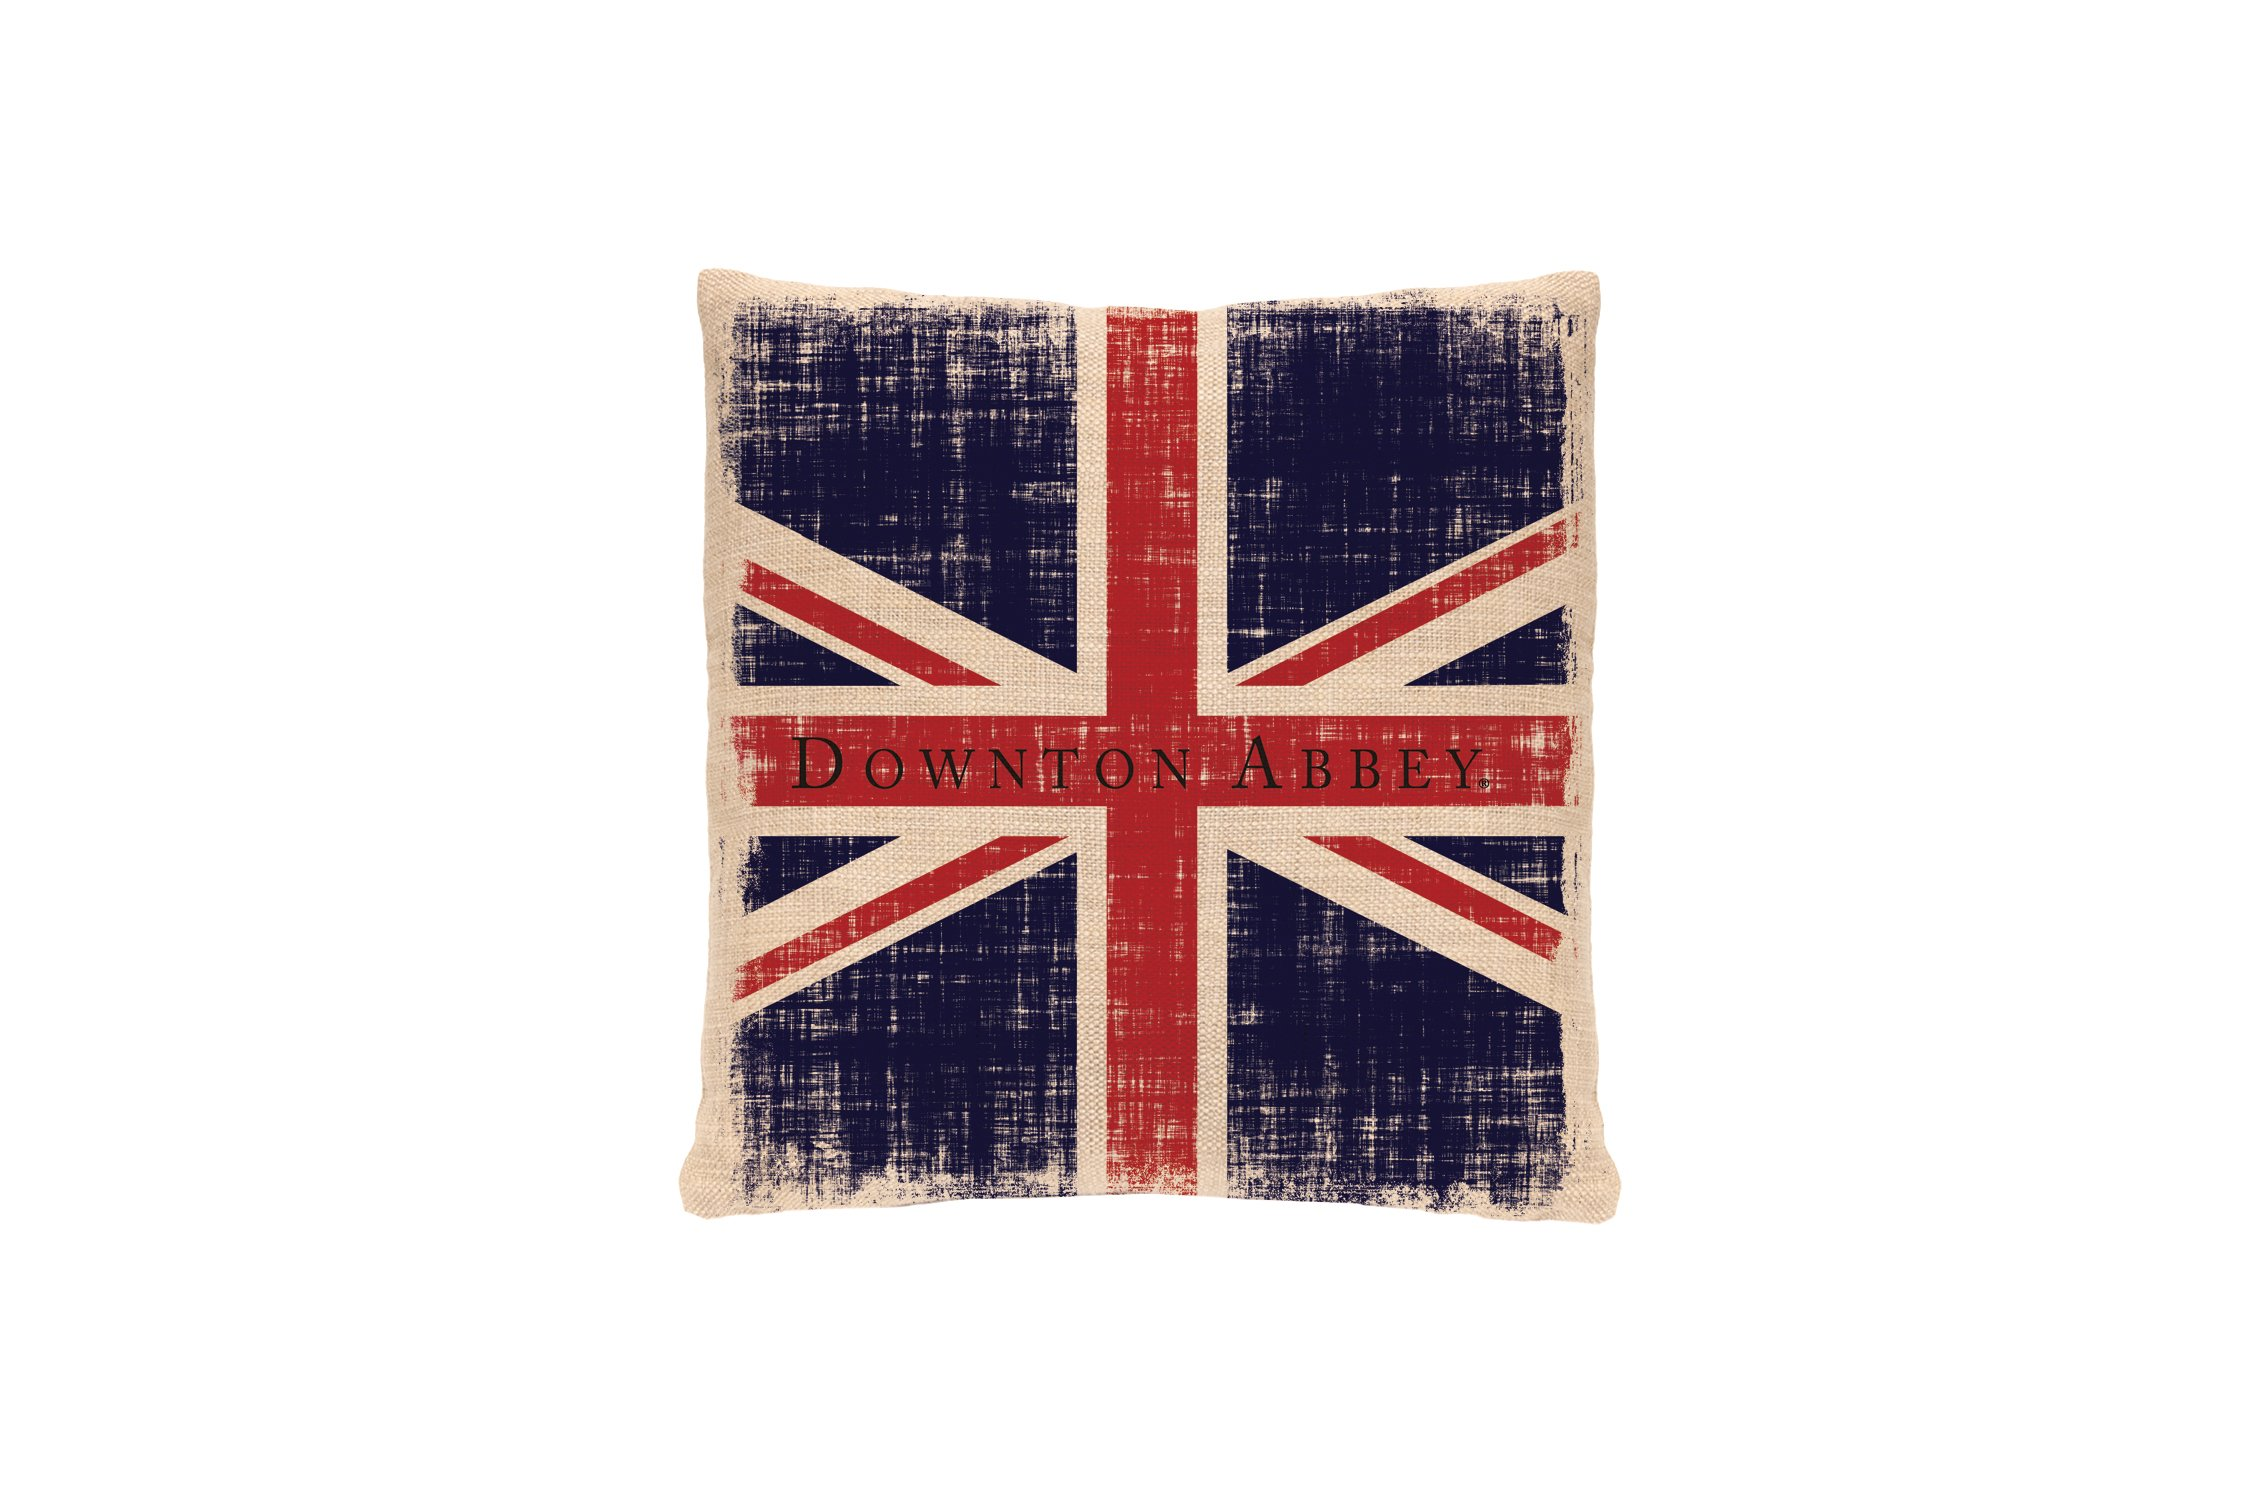 Heritage Lace Downton Abbey Downton Union Jack Pillow, 18 by 18-Inch, Natural